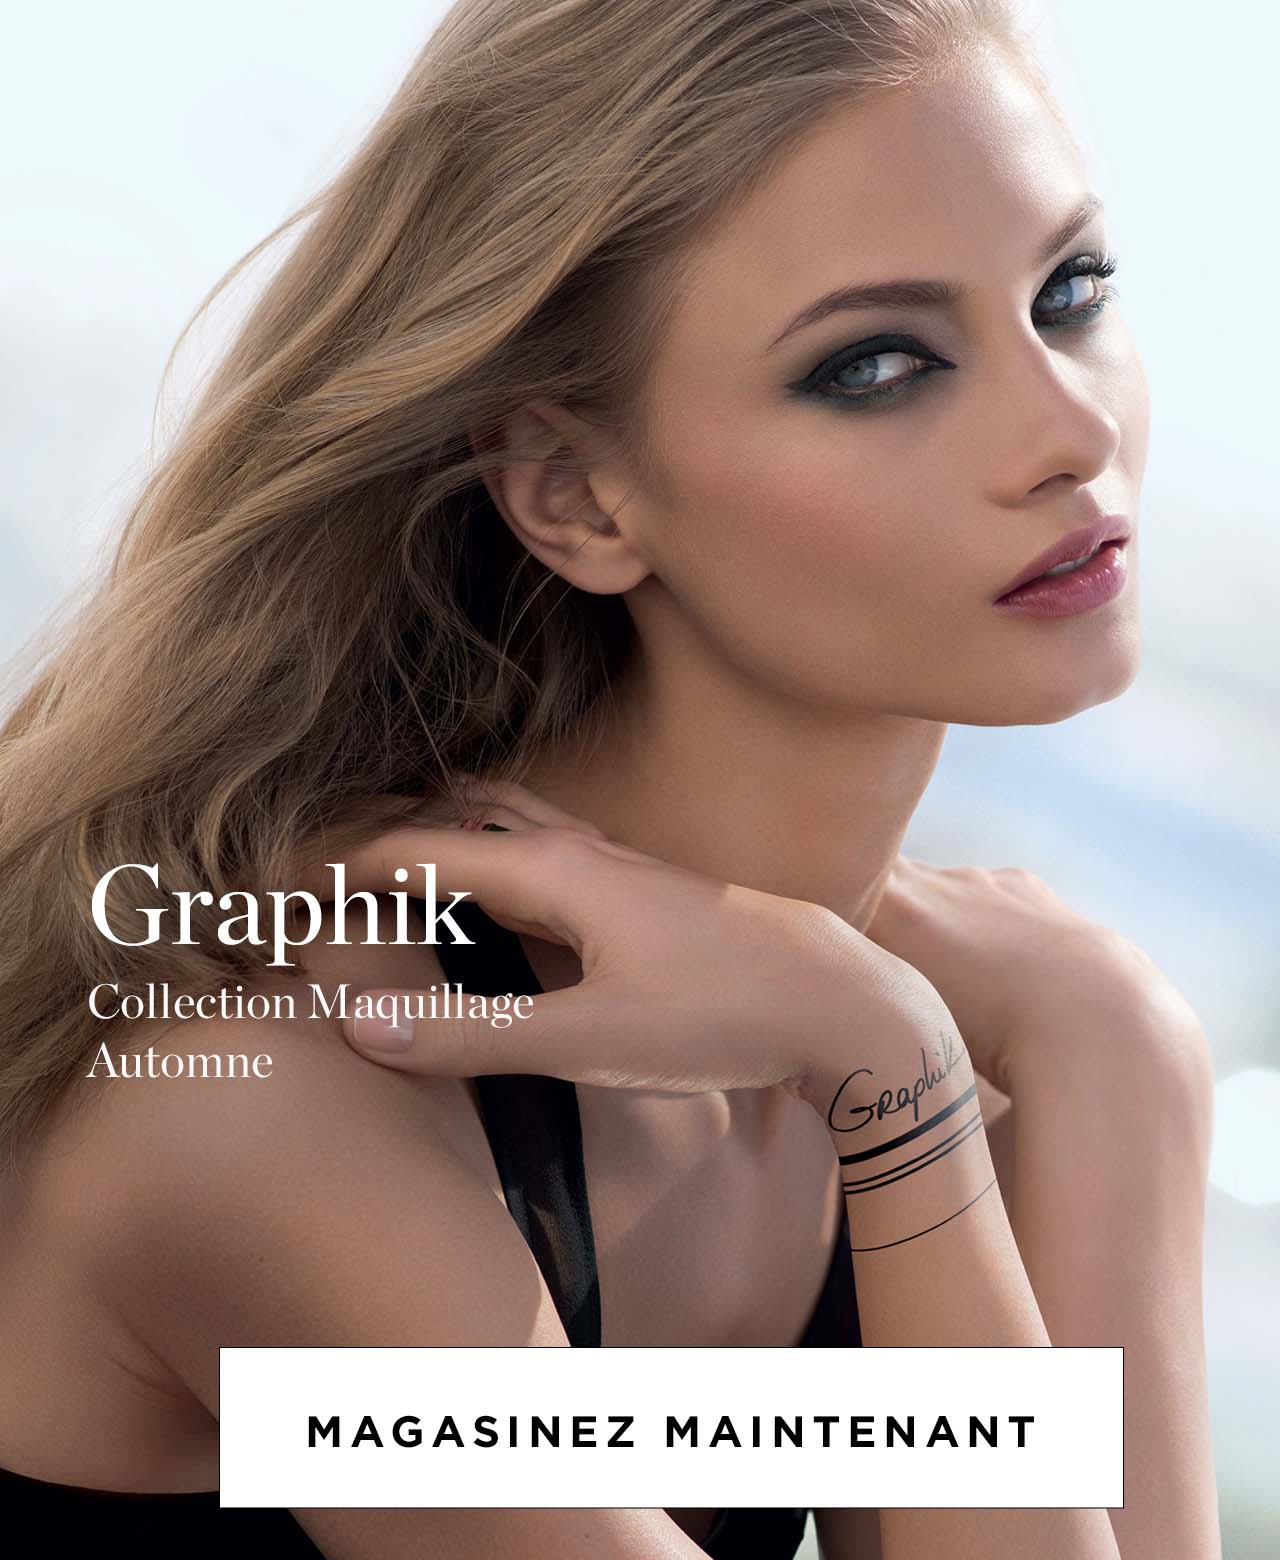 Graphik Collection Maquillage Automne